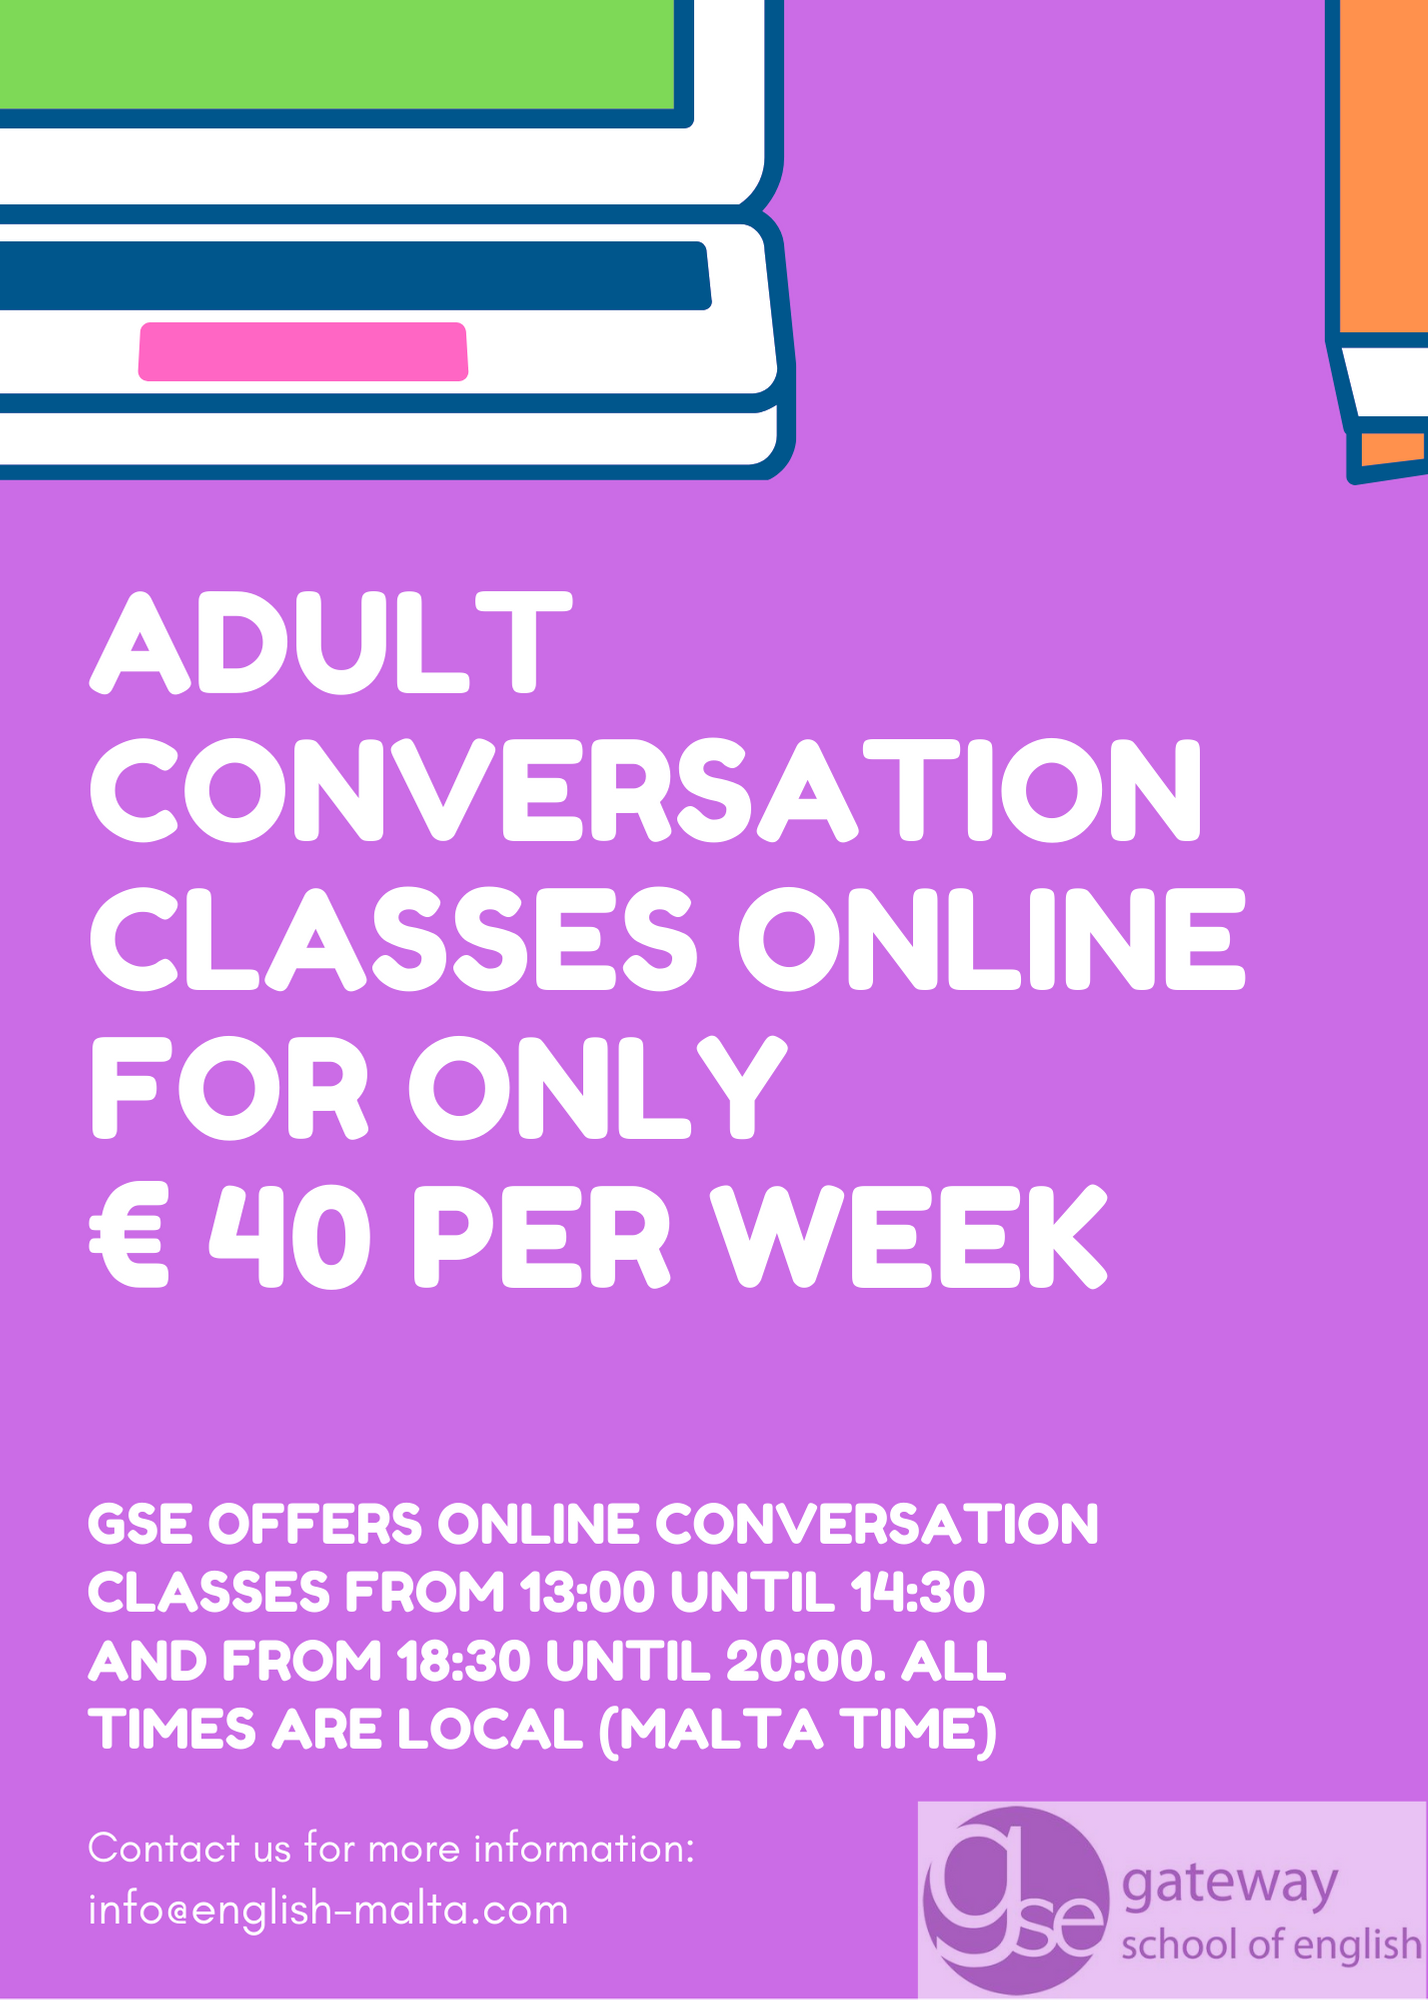 Online English Conversation Classes Courses Gateway School of English GSE